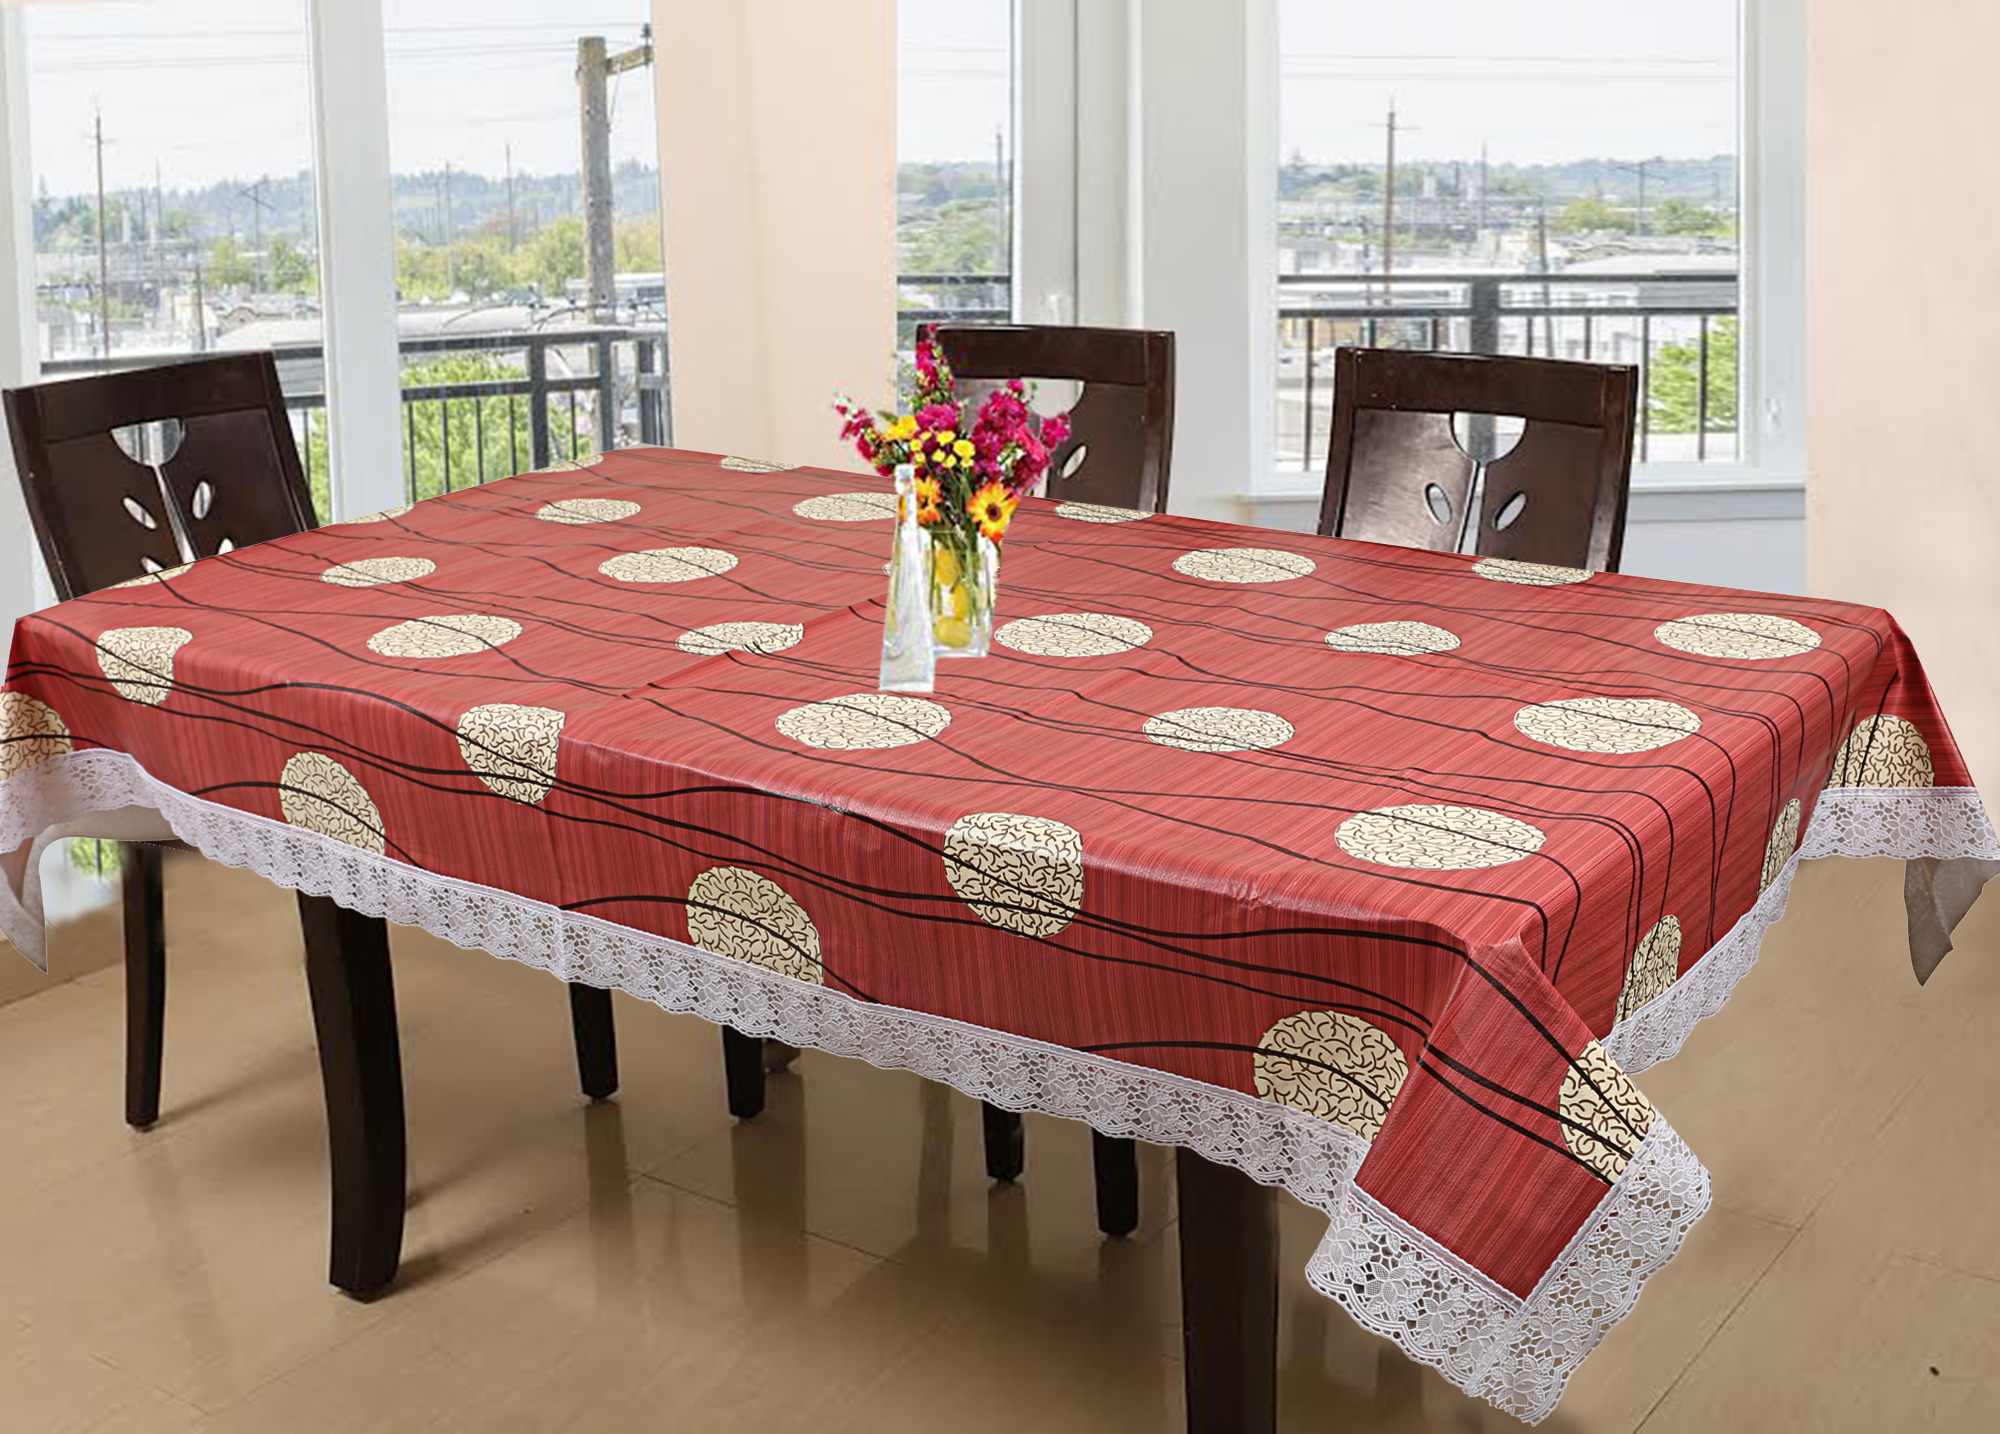 Kuber Industries PVC 6 Seater Dining Table Cover (Maroon)-CTKTC3524